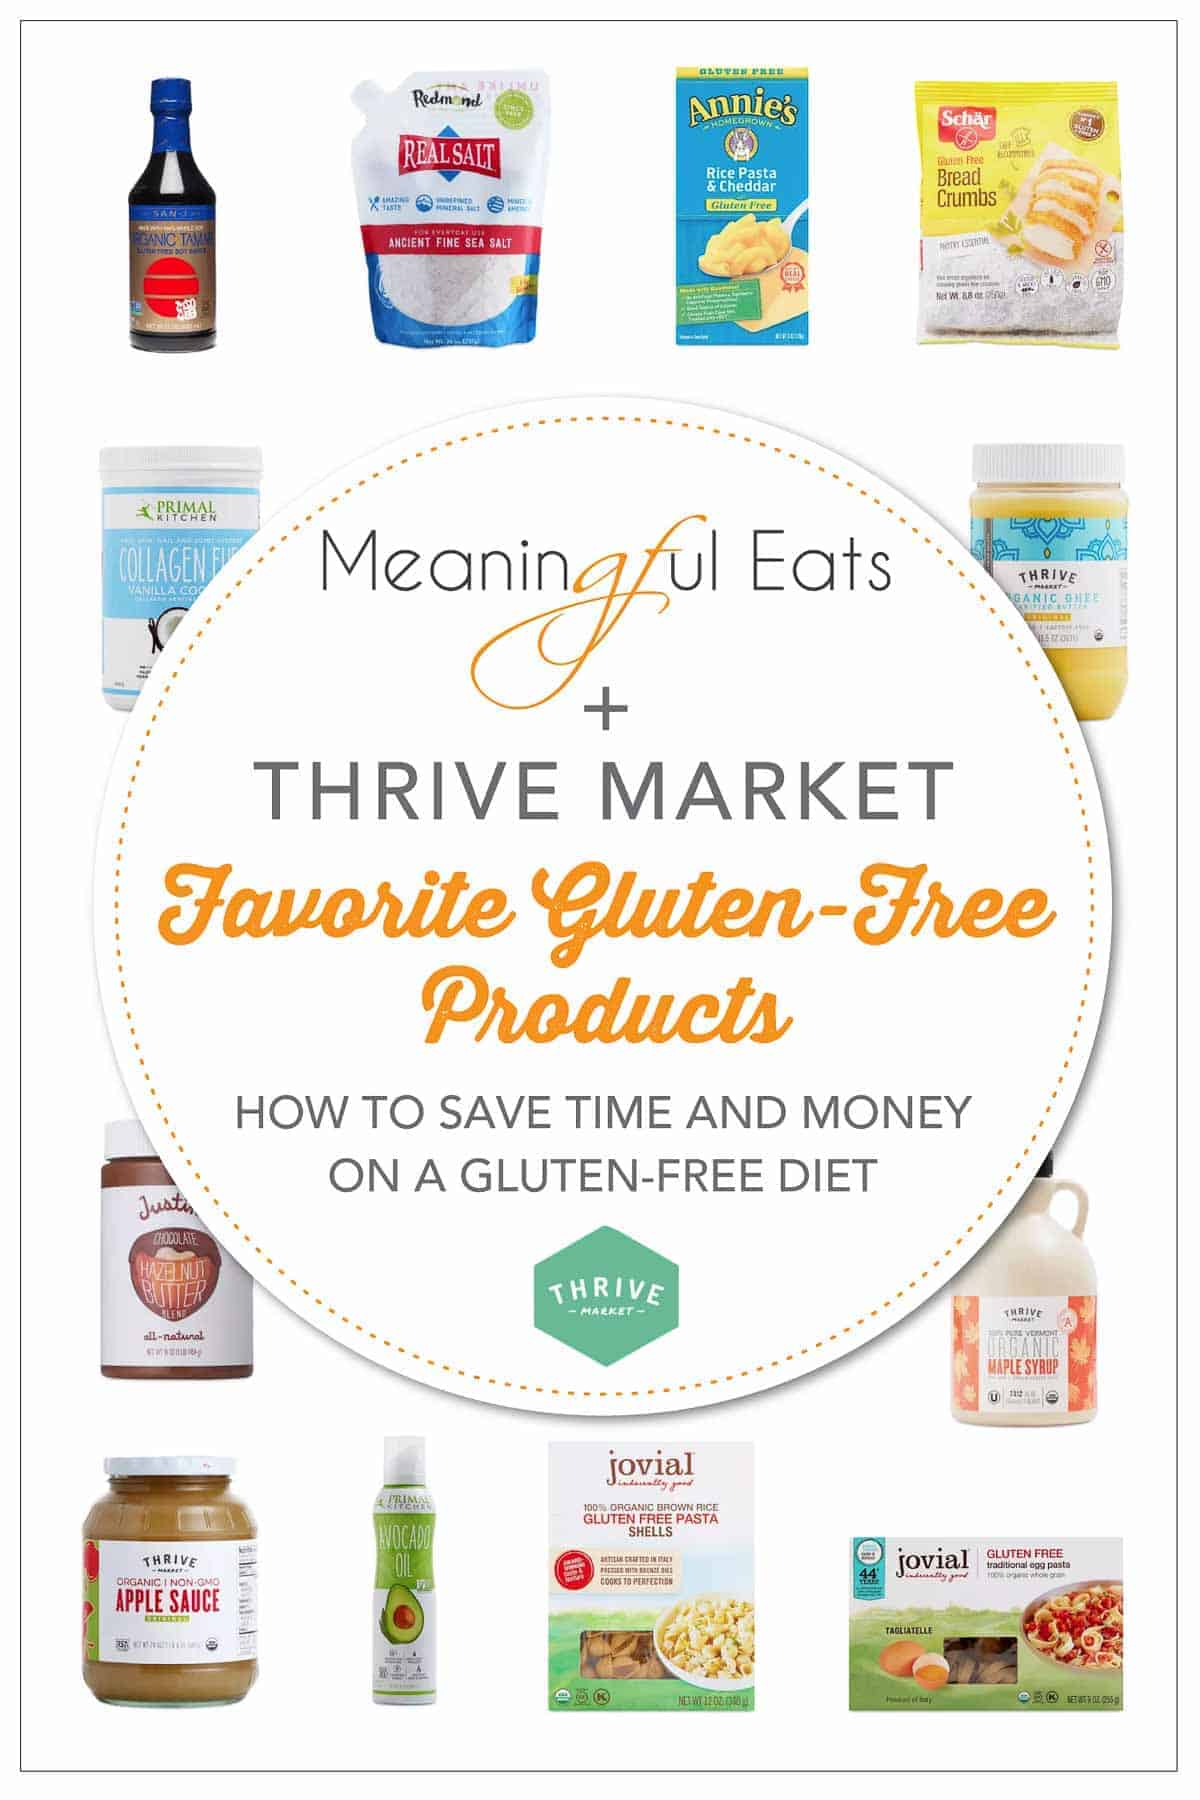 collage of gluten-free products from thrive market